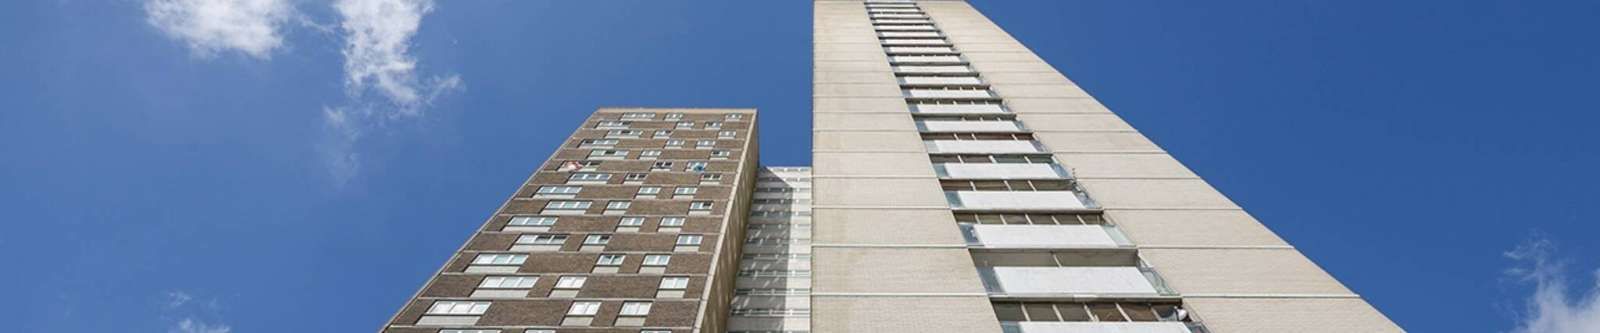 Millbrook tower stands tall following replacement of rainwater drainage stacks